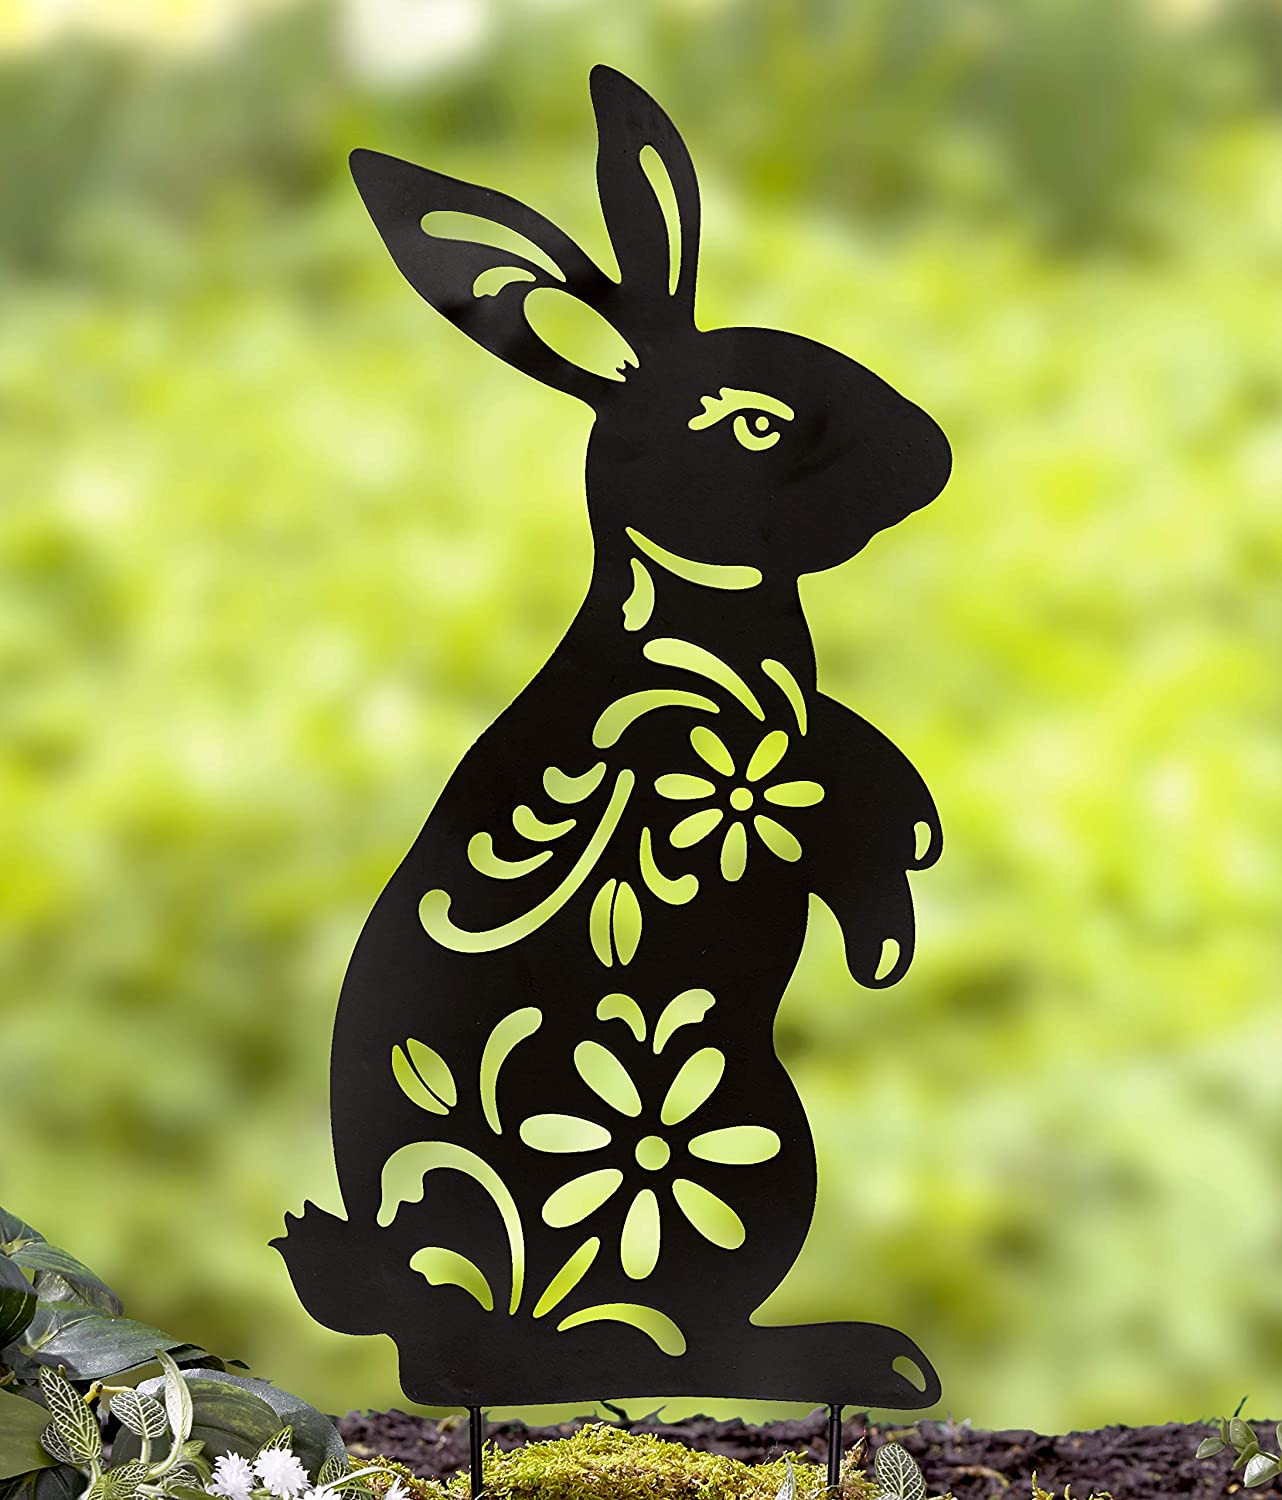 Ltd Commodities LLC Bunny Silhouette Stake for Yards, Gardens - Outdoor Shadow Decoration